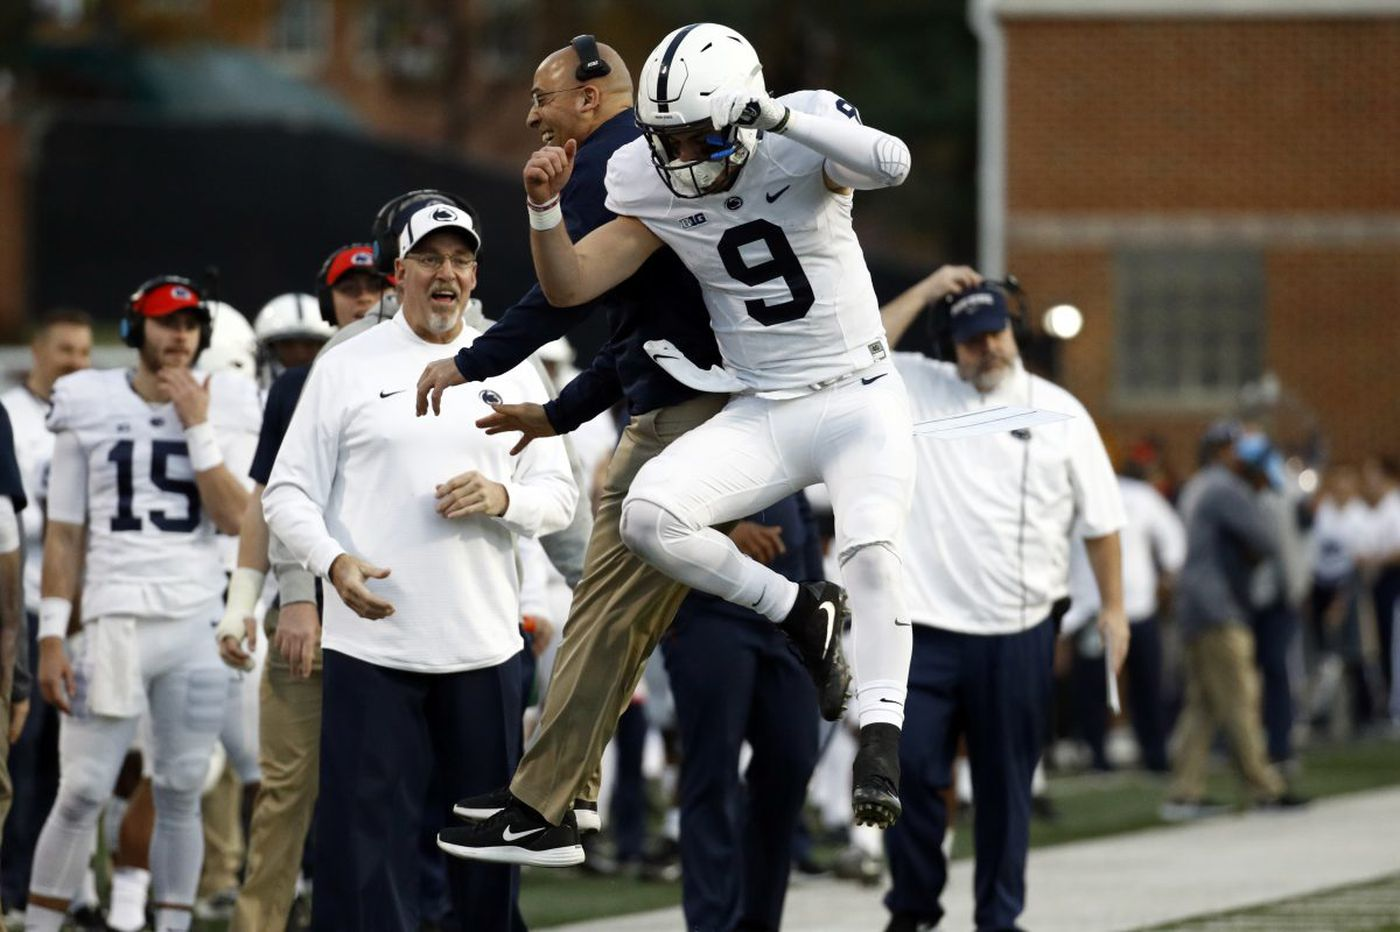 Penn State finishes strong, awaits bowl destination